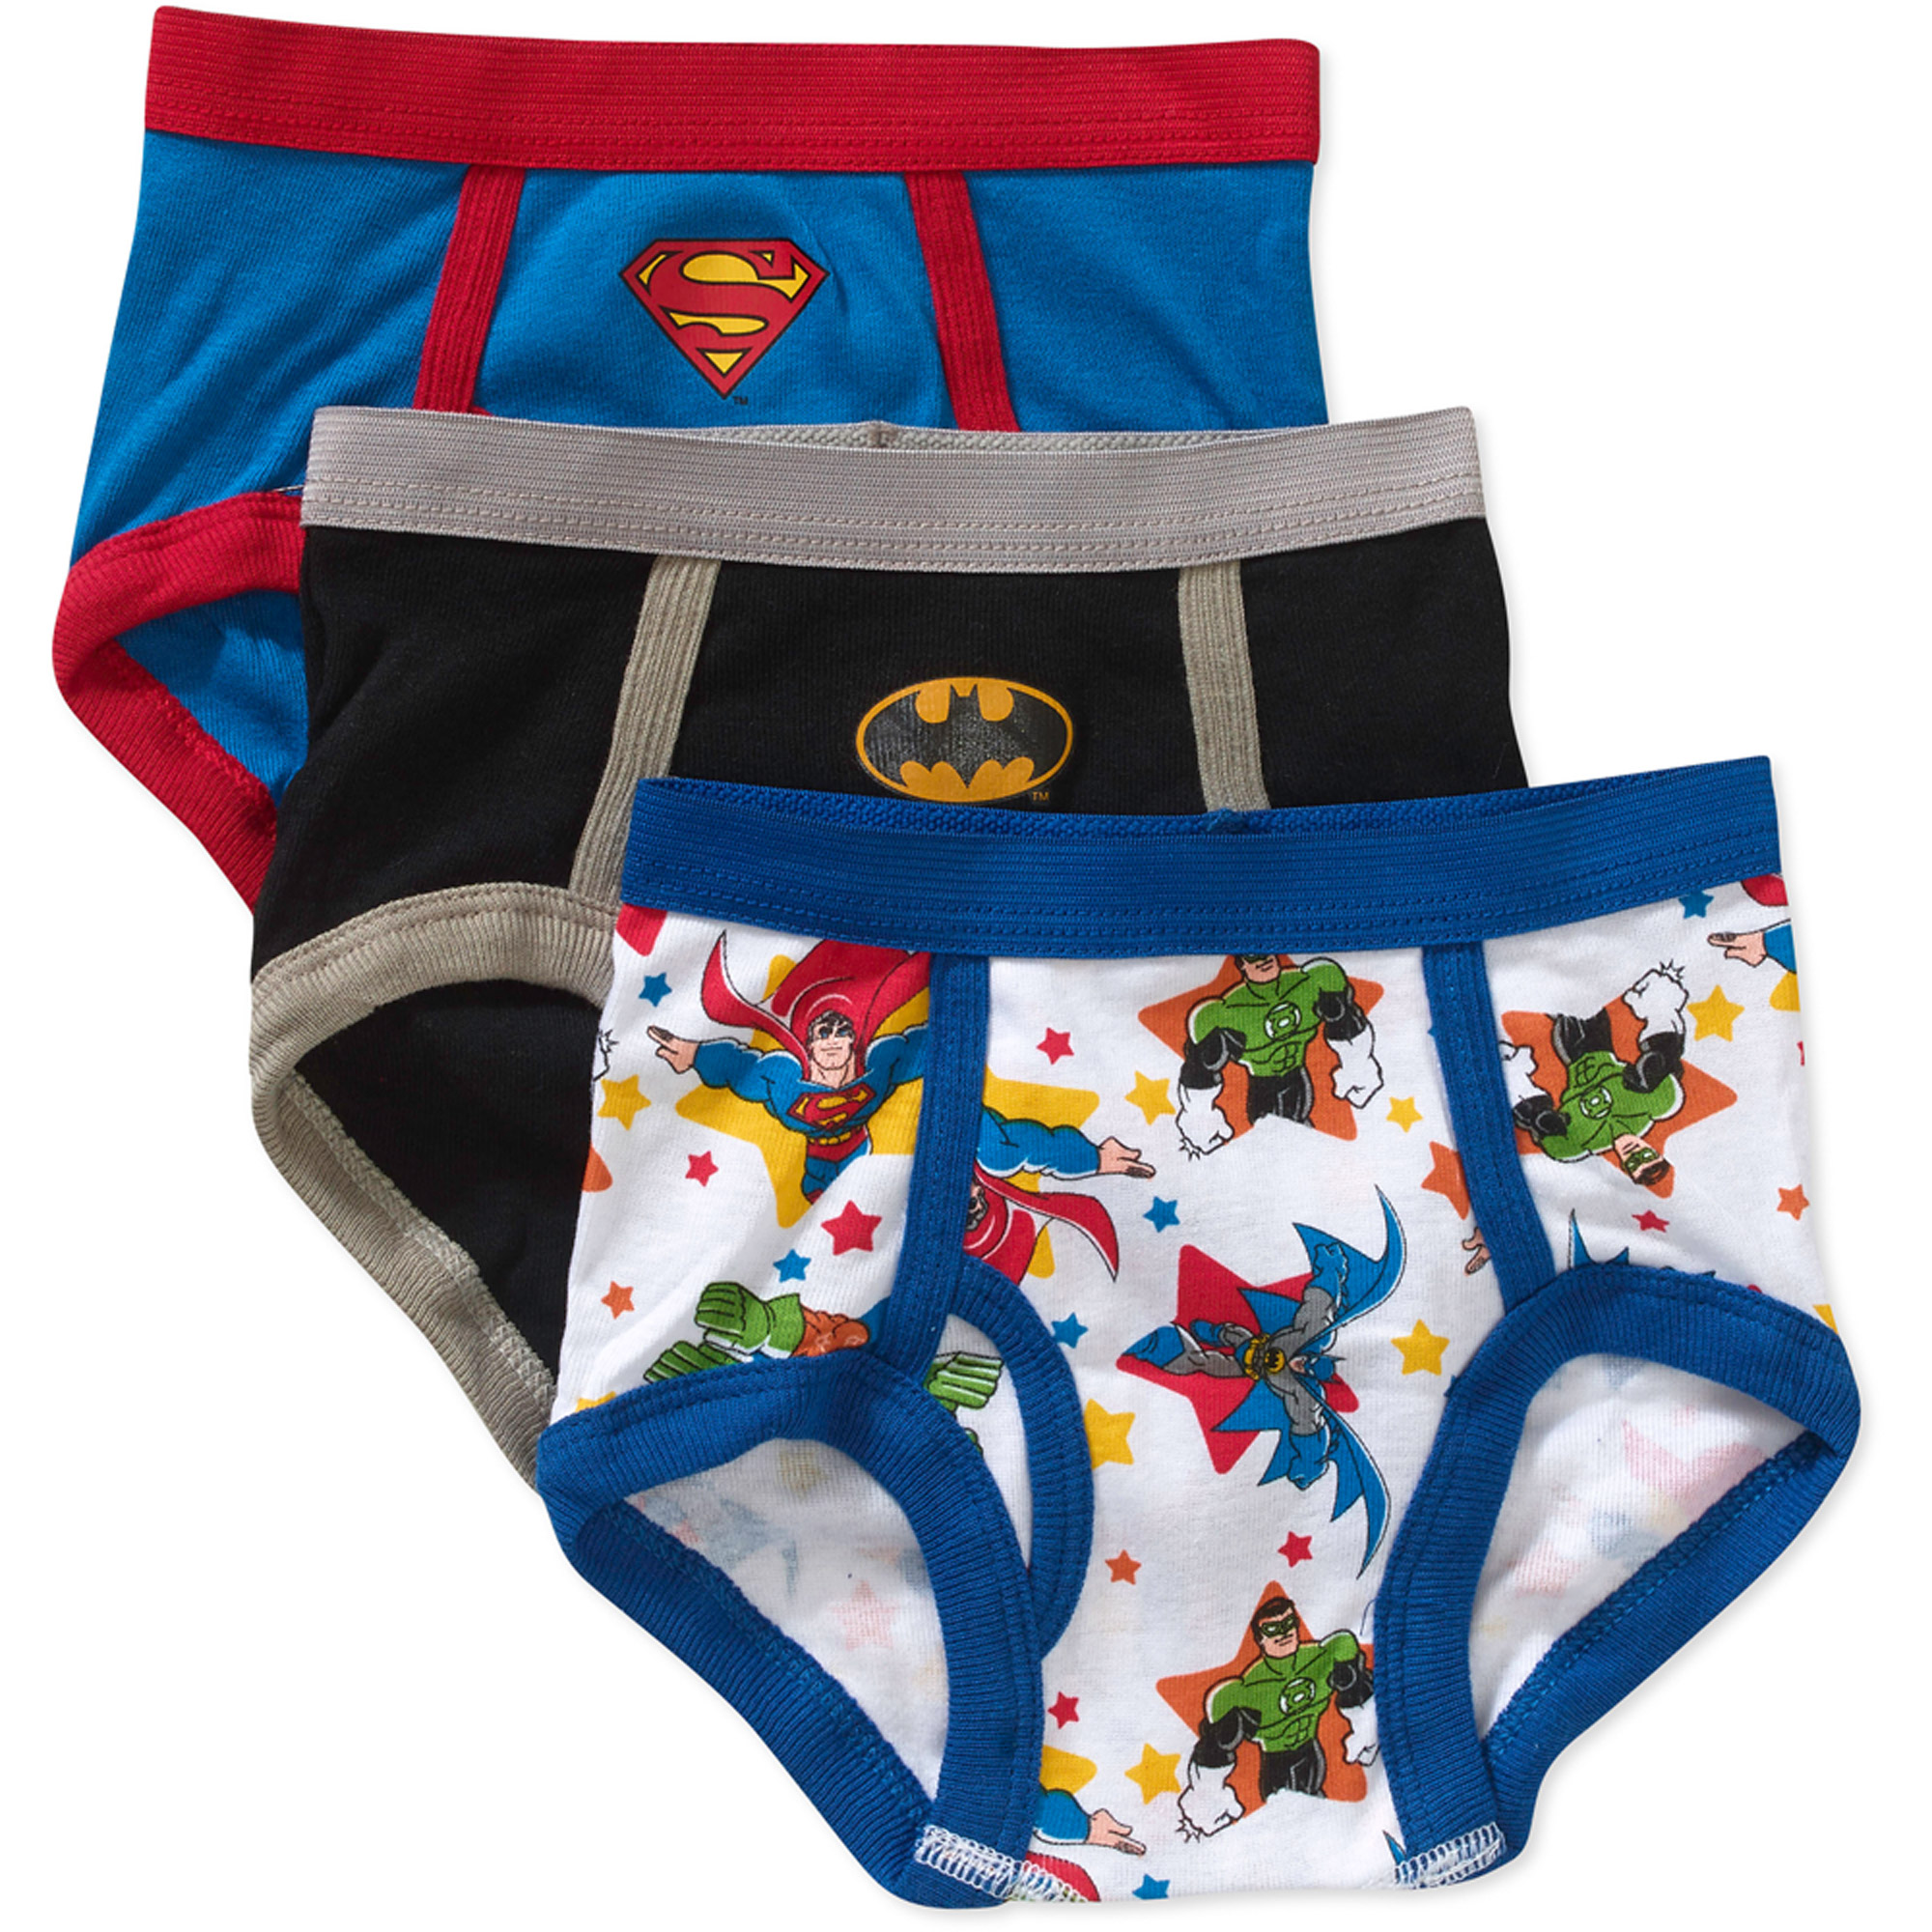 Hanes Baby & Toddler Designed with comfort and ease in mind, our toddler underwear is made with cotton-rich fabrics, soft, flexible waistbands and leg bands that won't pinch or bind. Available in briefs and boxer briefs, our toddler underwear comes in a variety of fun colors and prints.